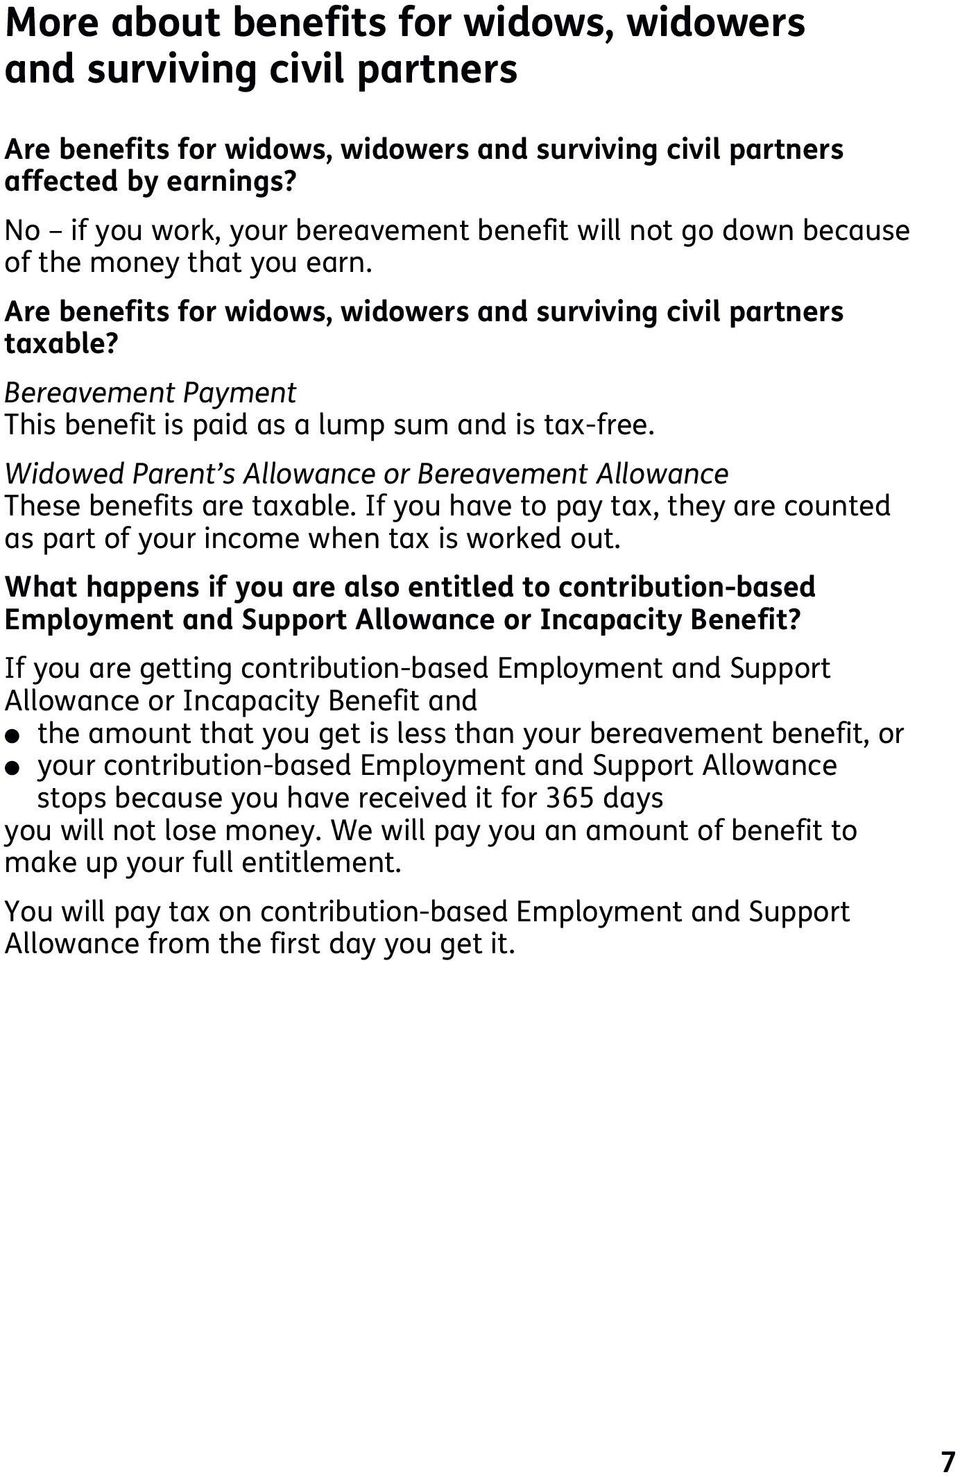 Bereavement Payment This benefit is paid as a ump sum and is tax-free. Widowed Parent s Aowance or Bereavement Aowance These benefits are taxabe.